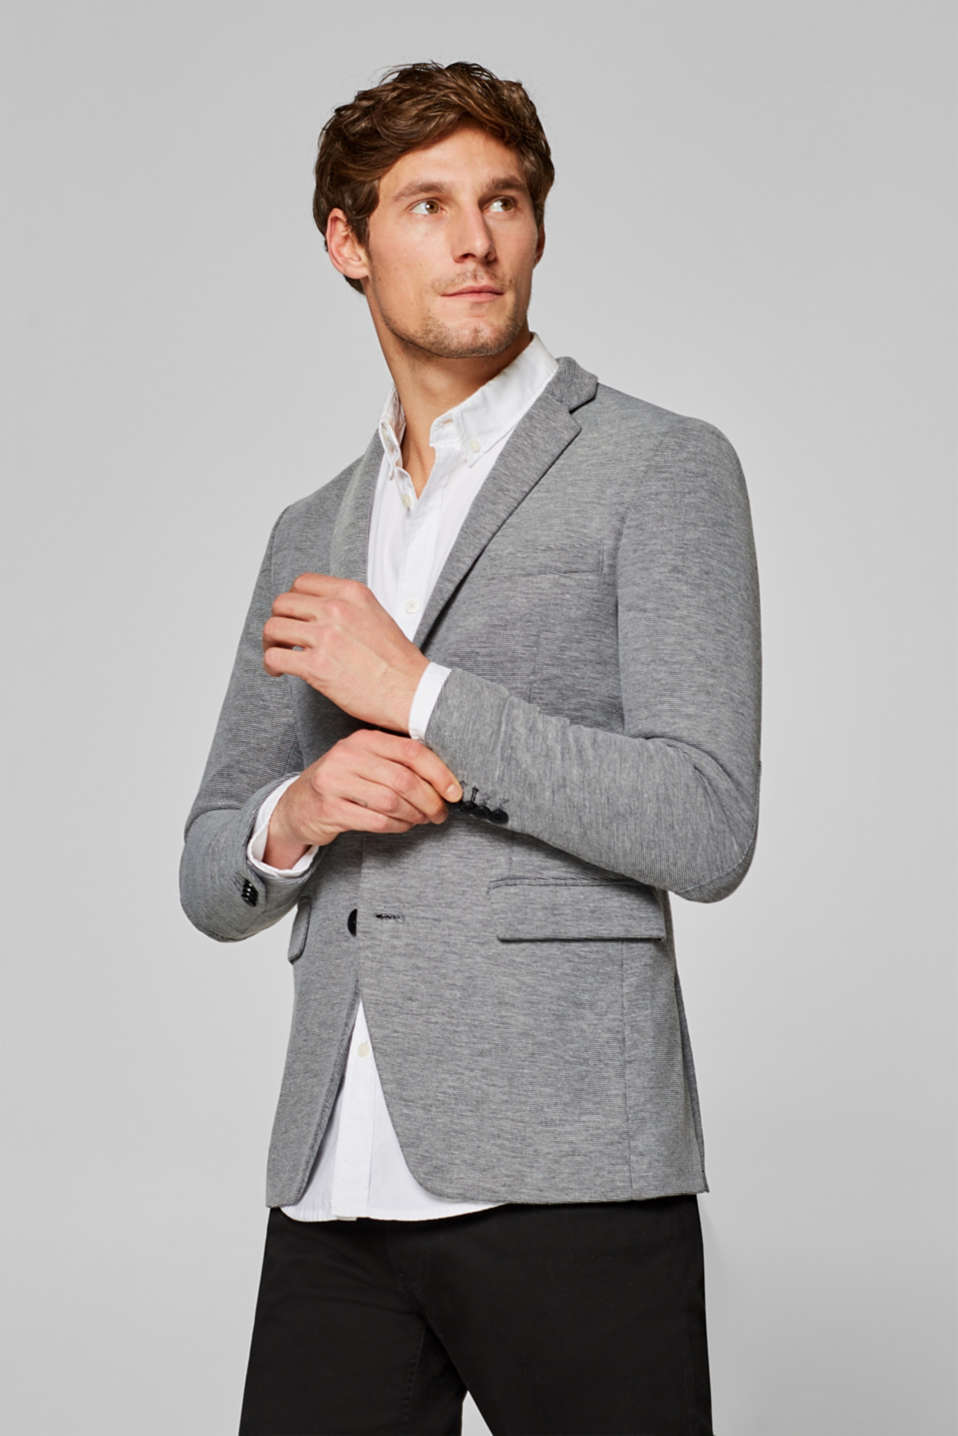 Esprit - Mens blazer in black/white look, made of jersey